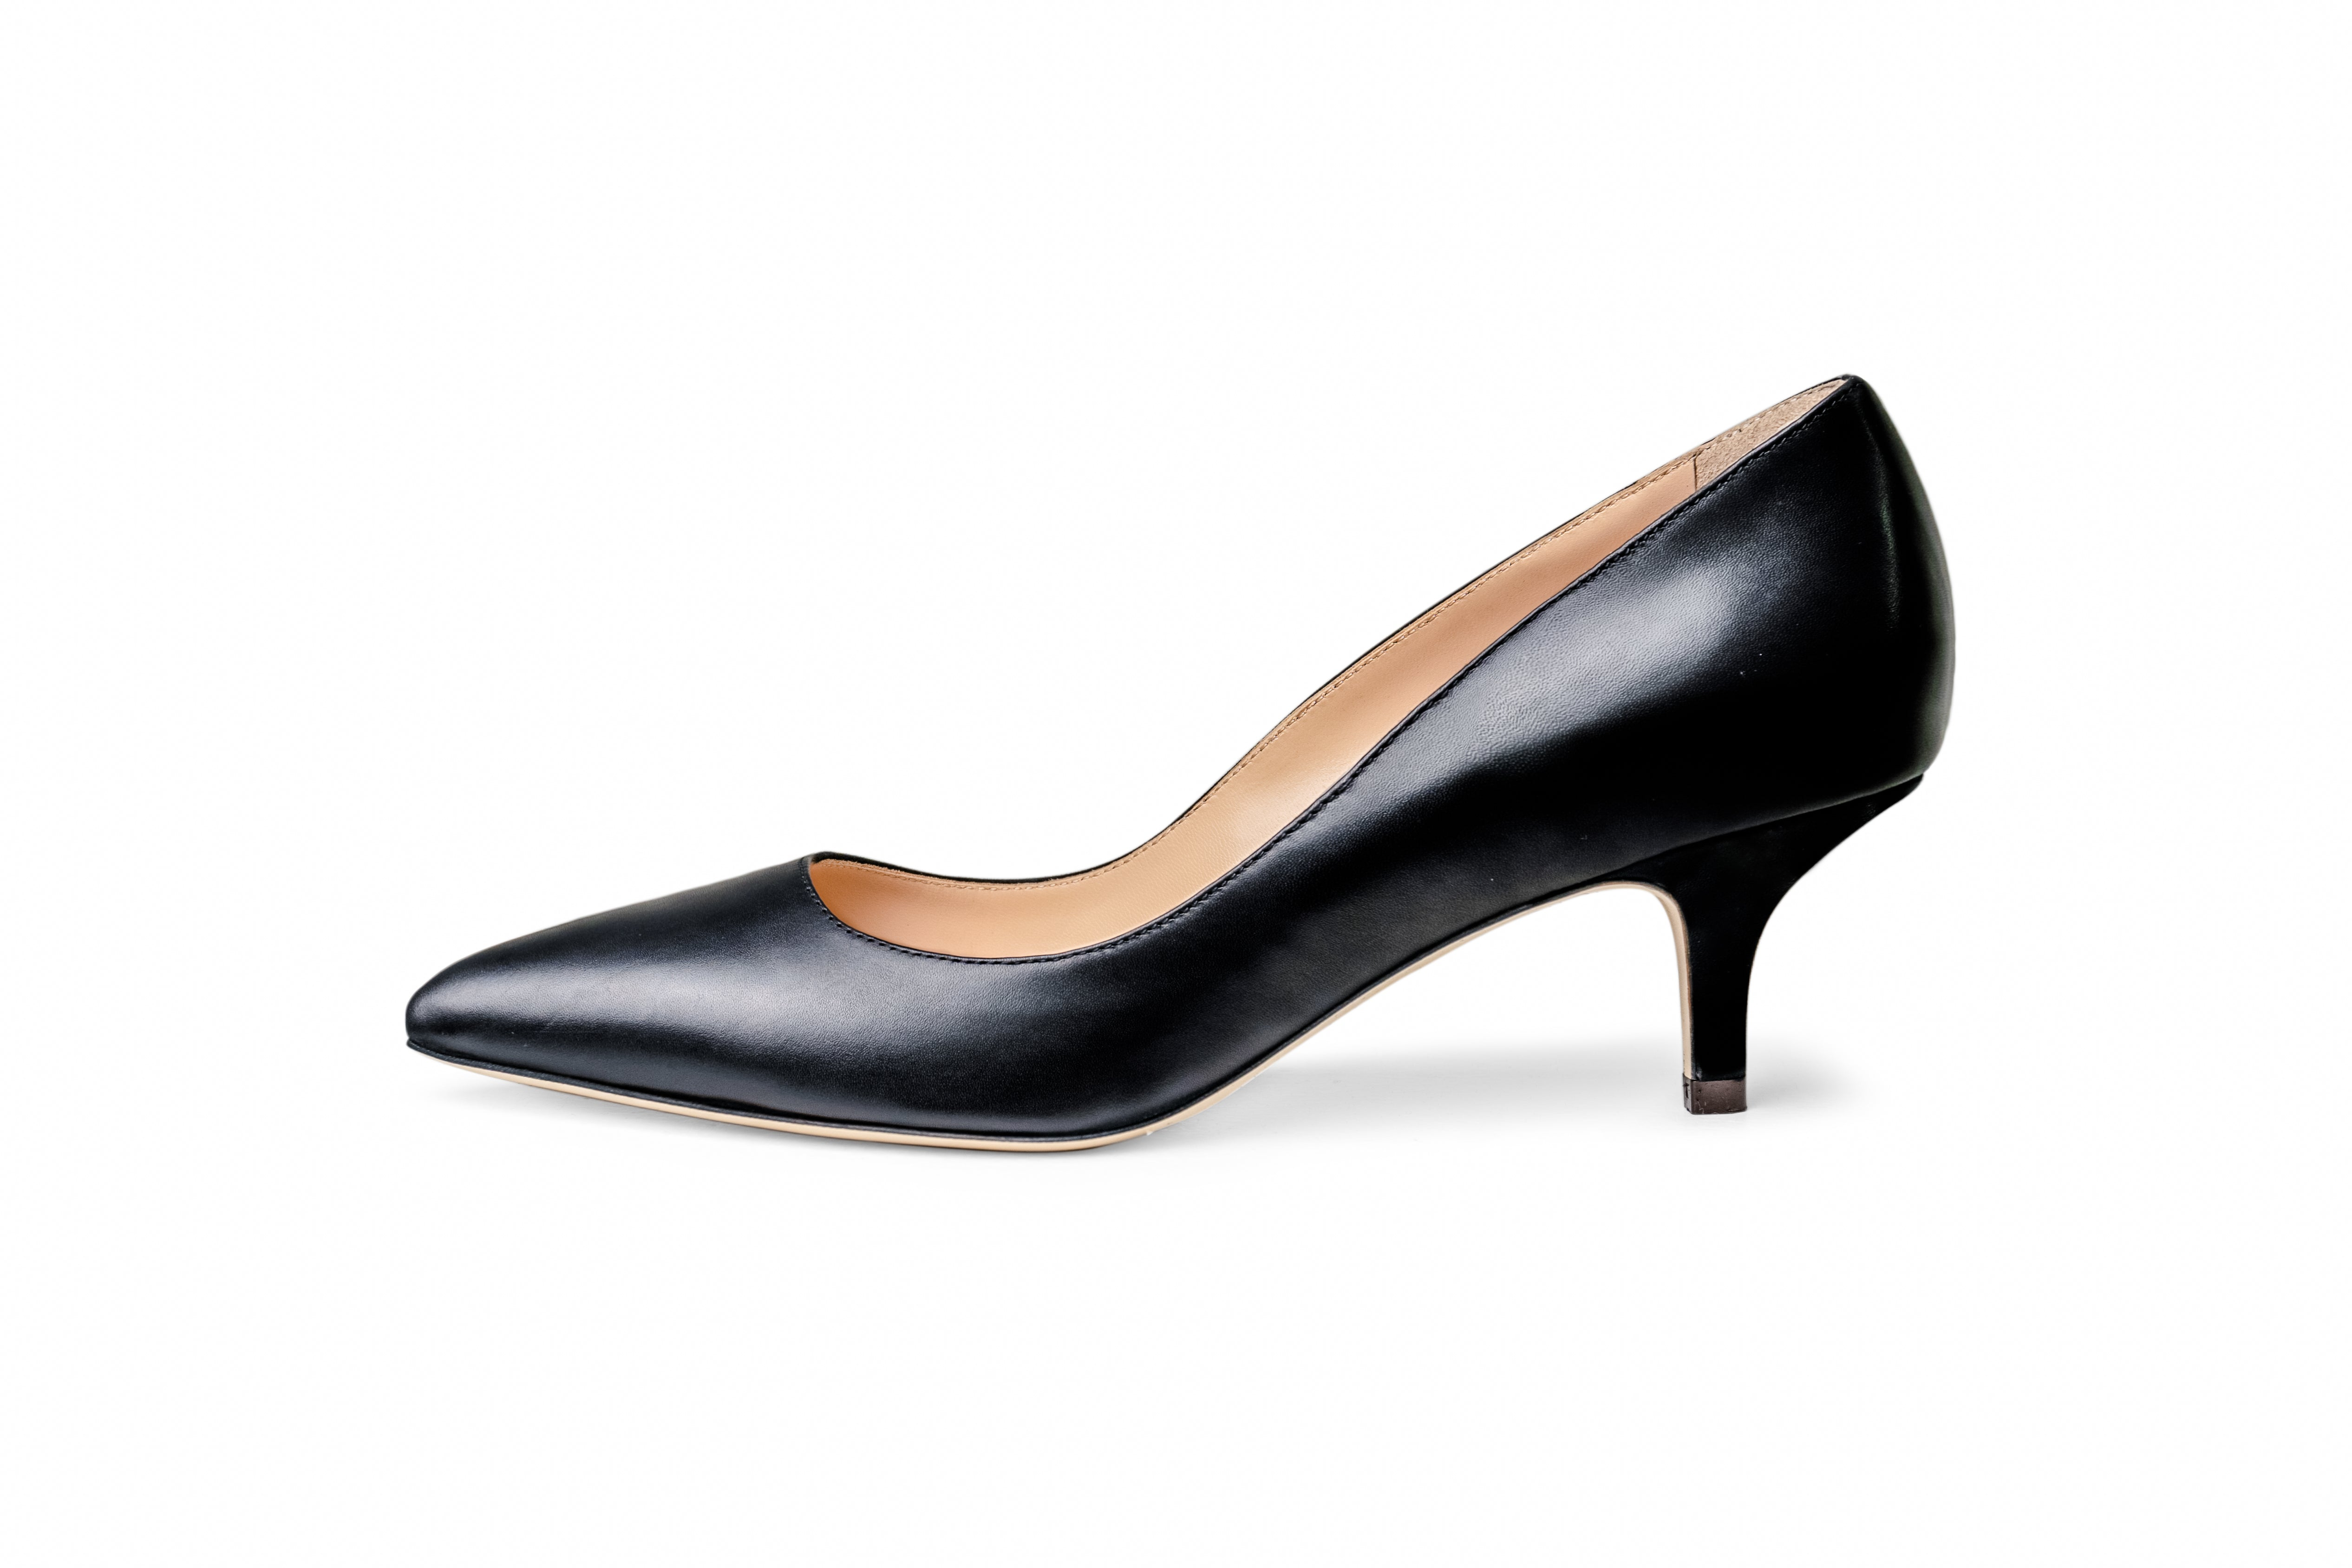 The Black Collection - 50mm Heel in Italian Nappa Leather